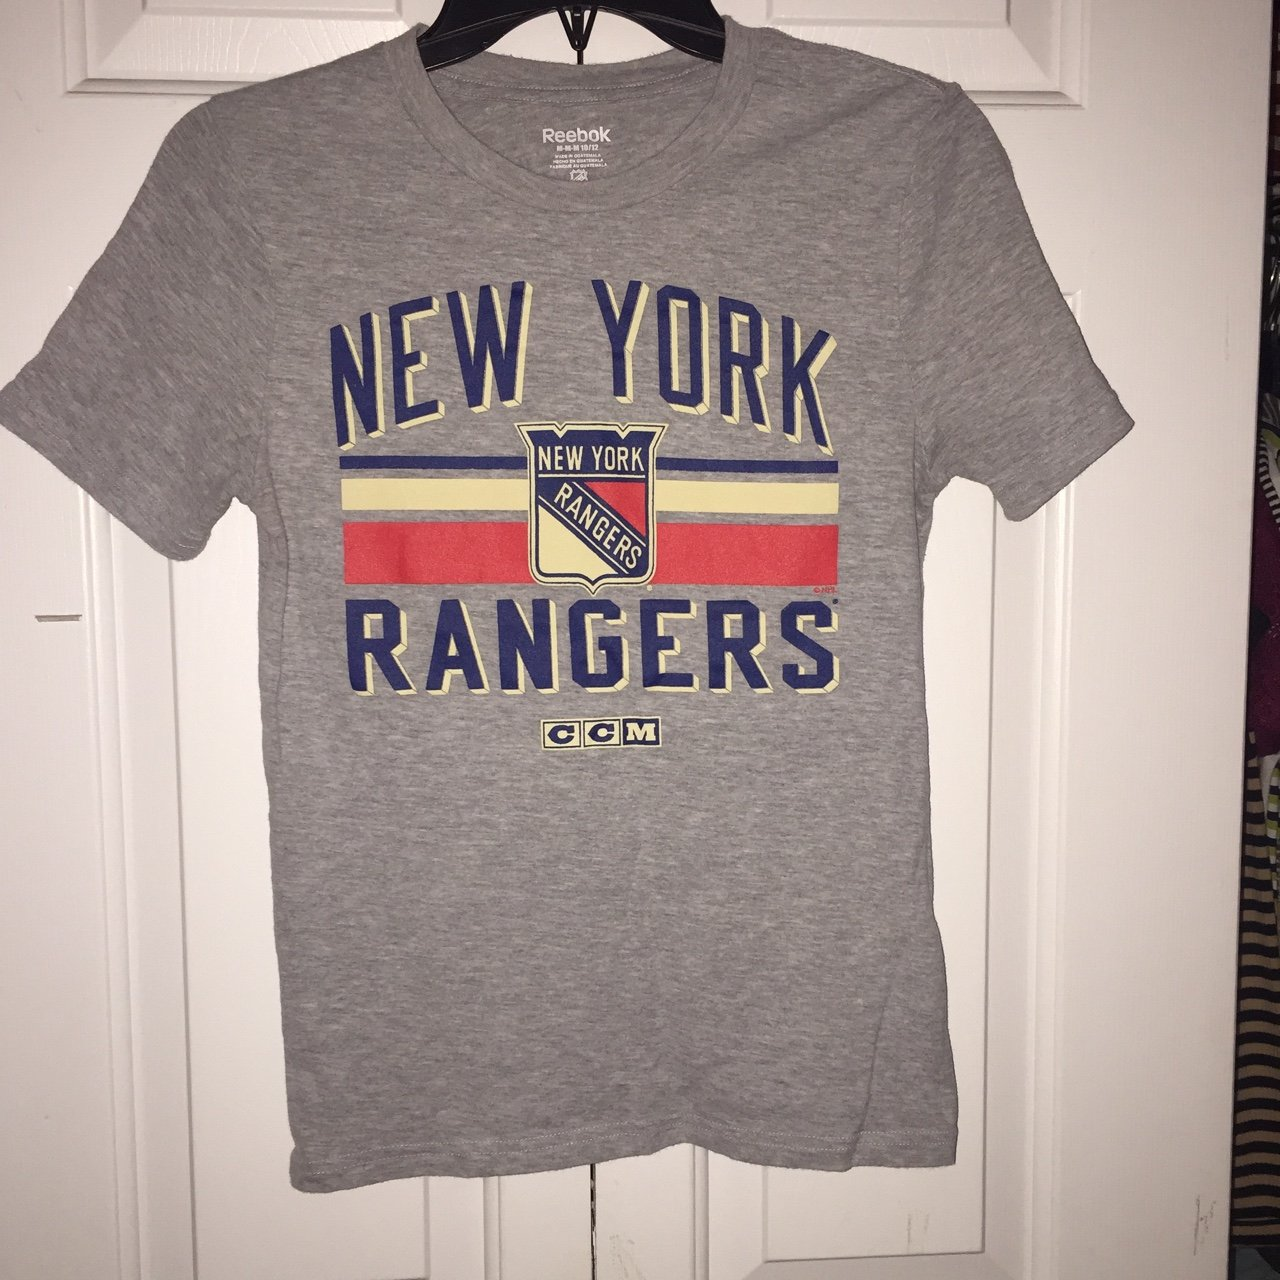 1266c2ed2 New York Rangers T-shirt - perfect for a casual look - M - Depop